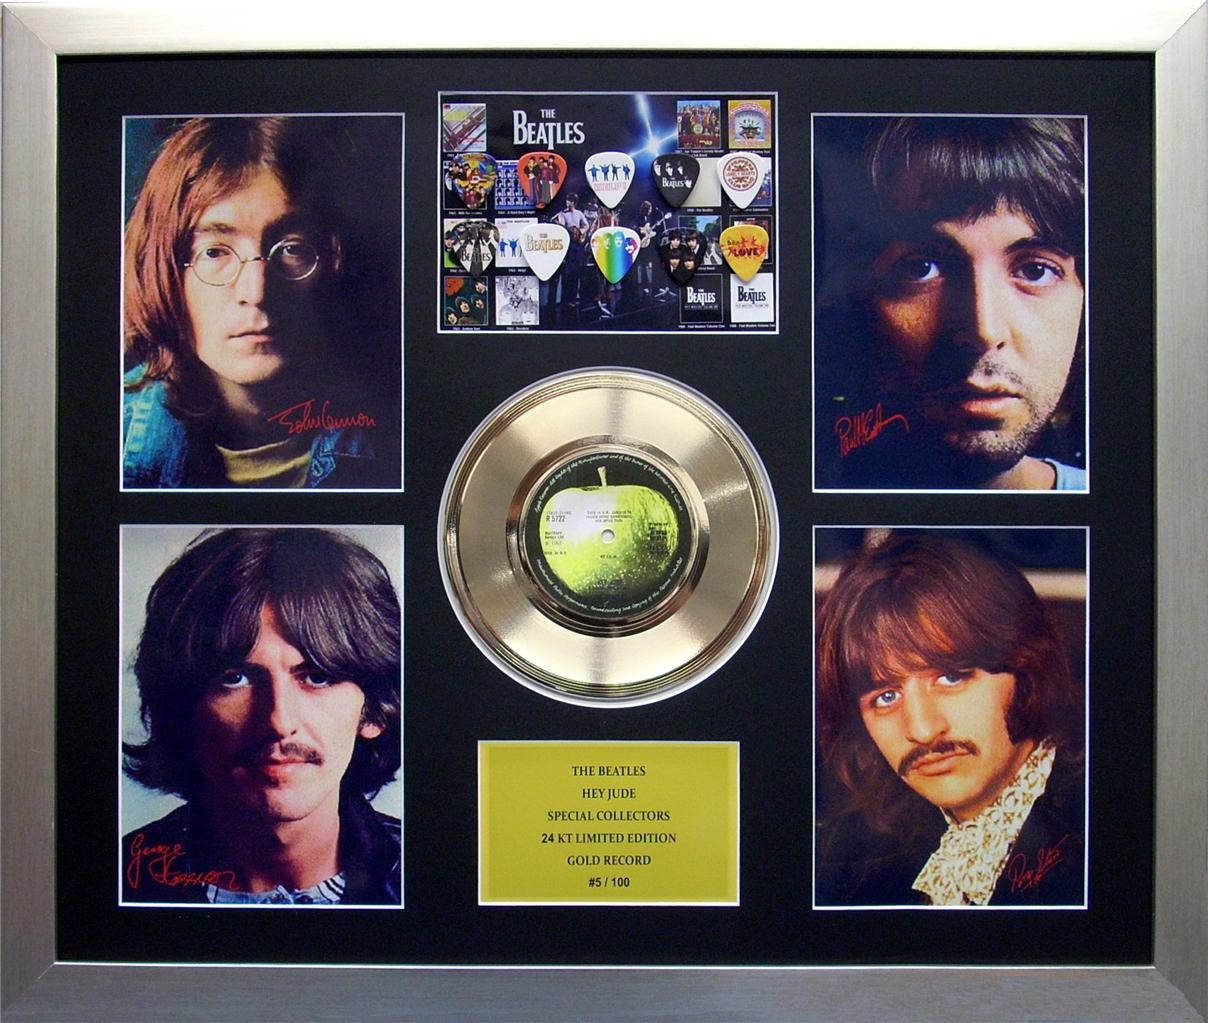 Beatles-Hey-Jude-Special-Collectors-Ltd-Ed-Framed-24KT-Gold-Record-Memorabila